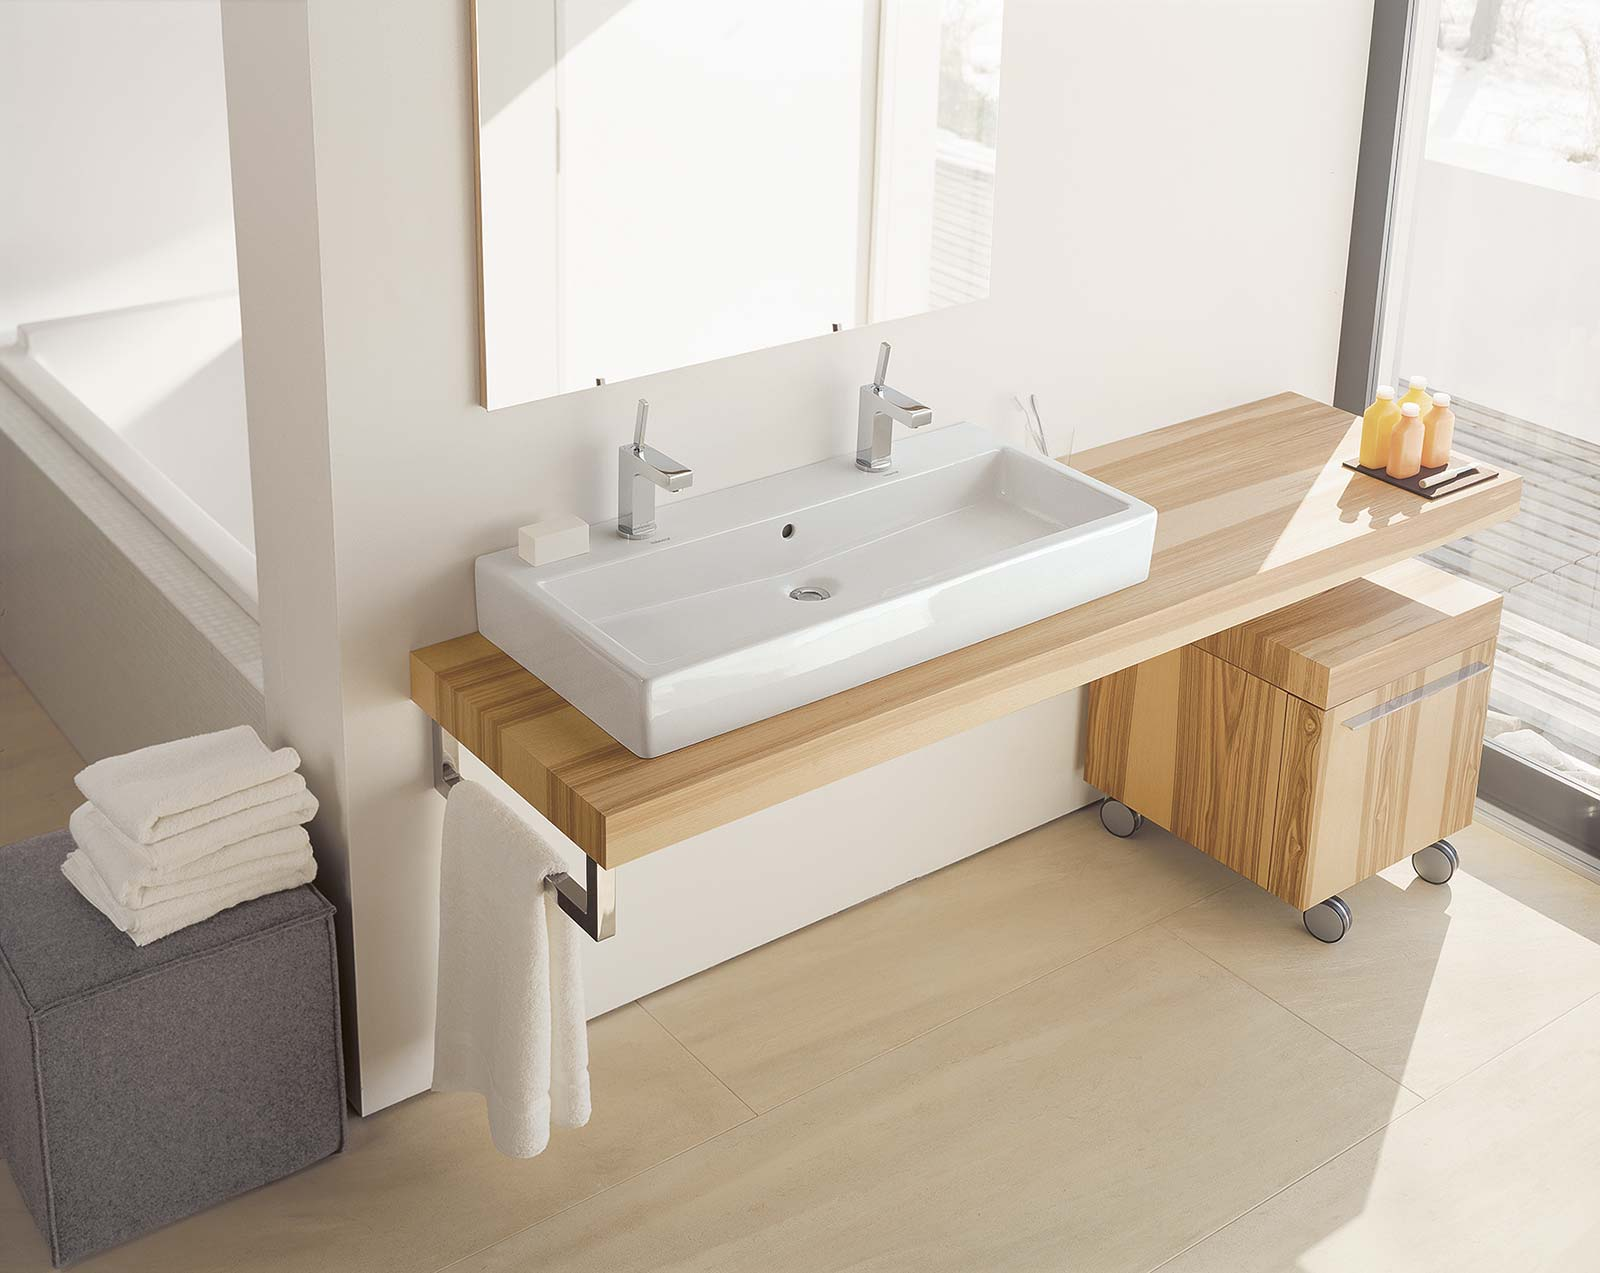 Plan vasque duravit vero - Vasque double a poser ...